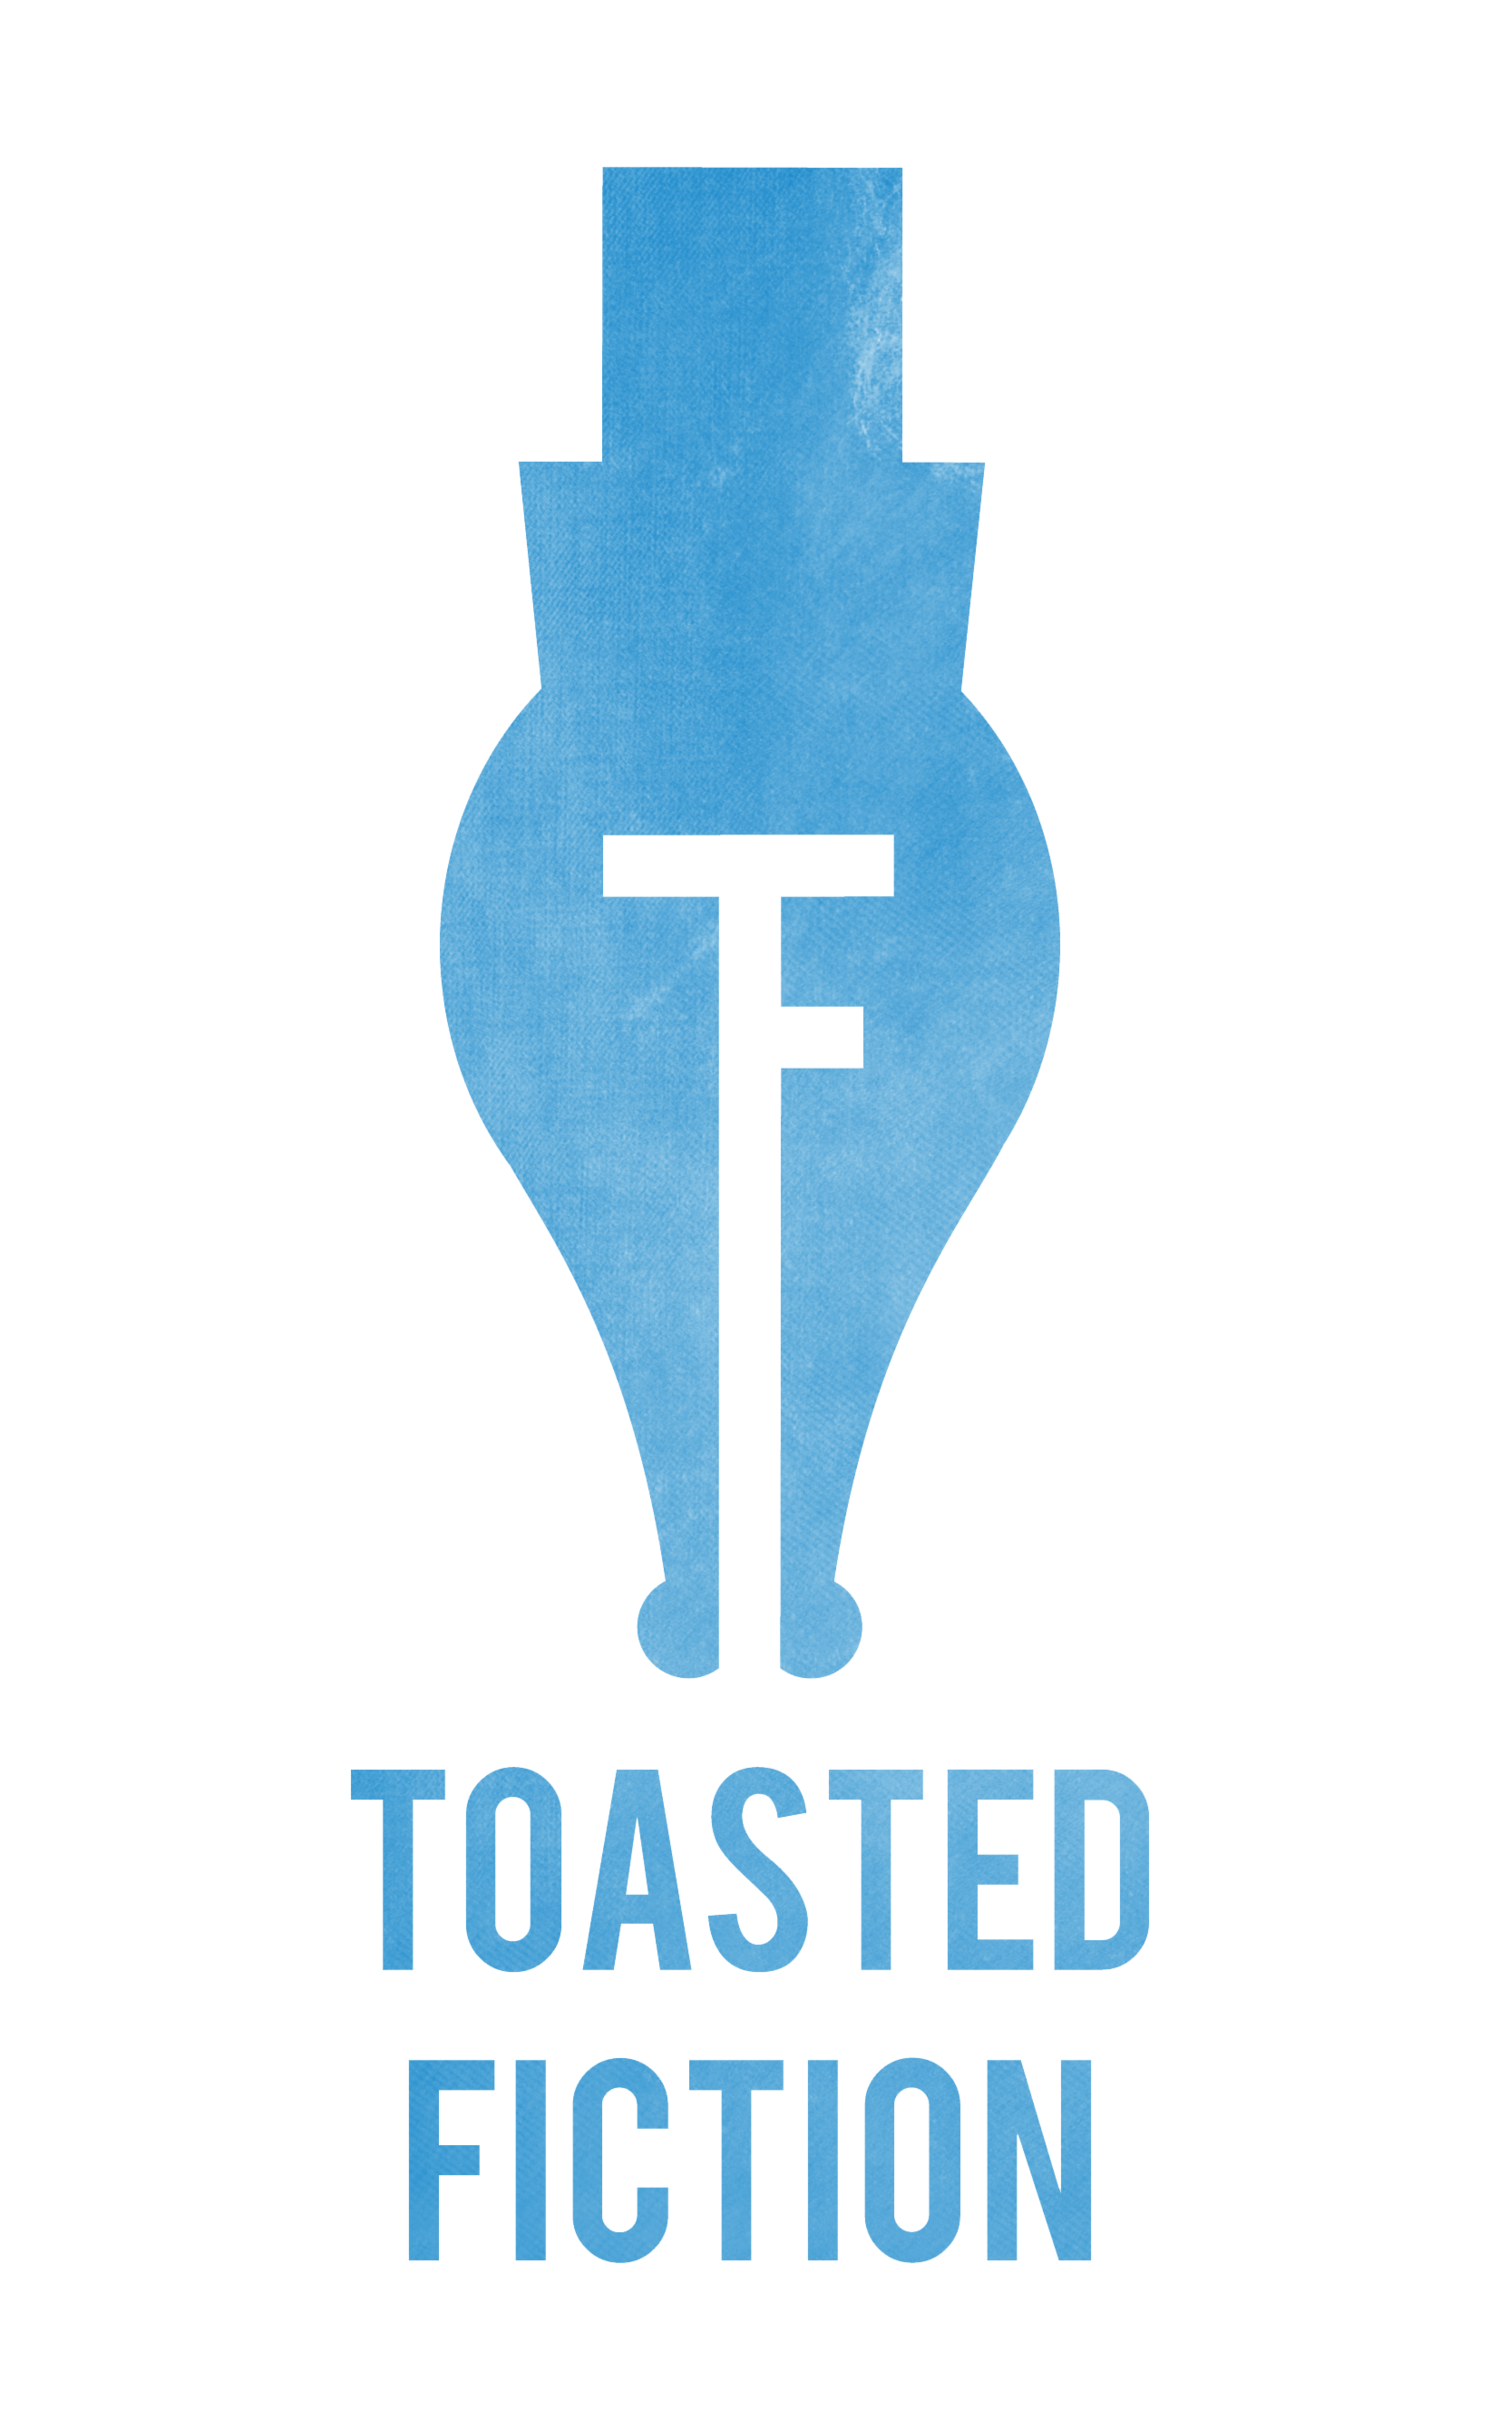 Toasted Fiction